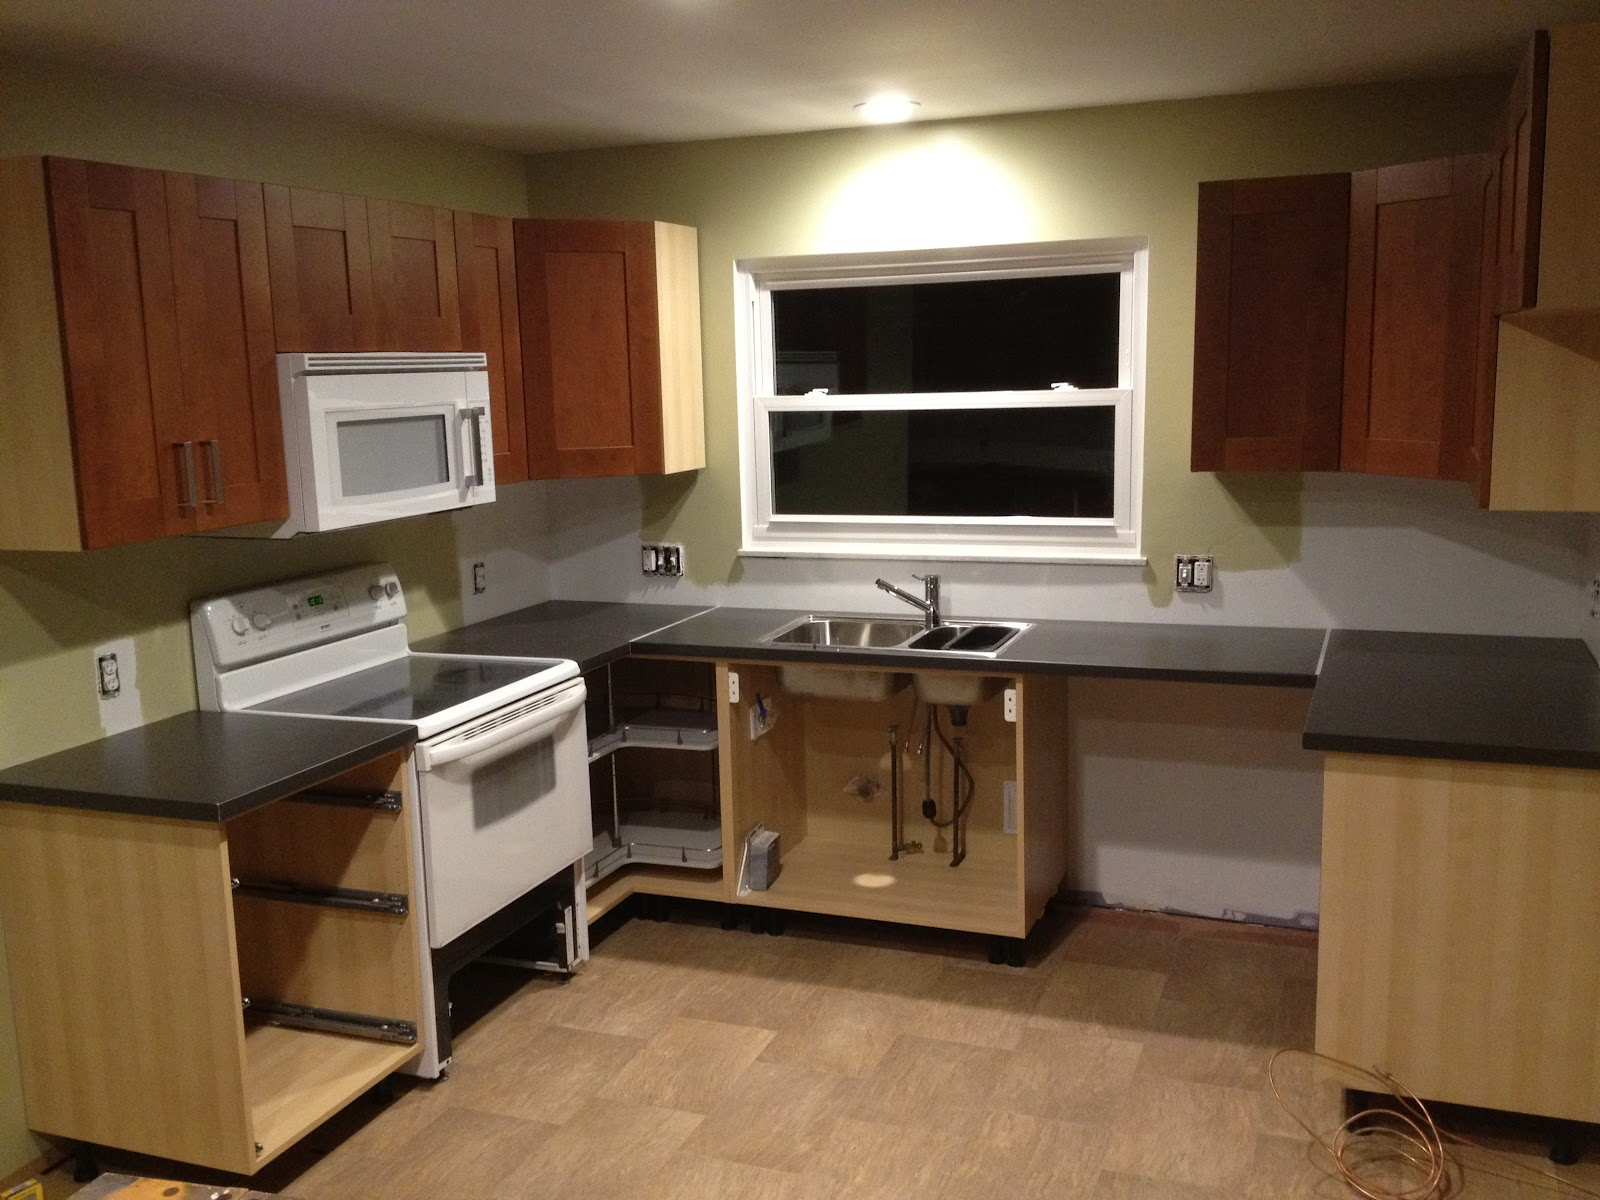 Pragel Countertop Our Ikea Kitchen Cabinets And Countertops Part 2